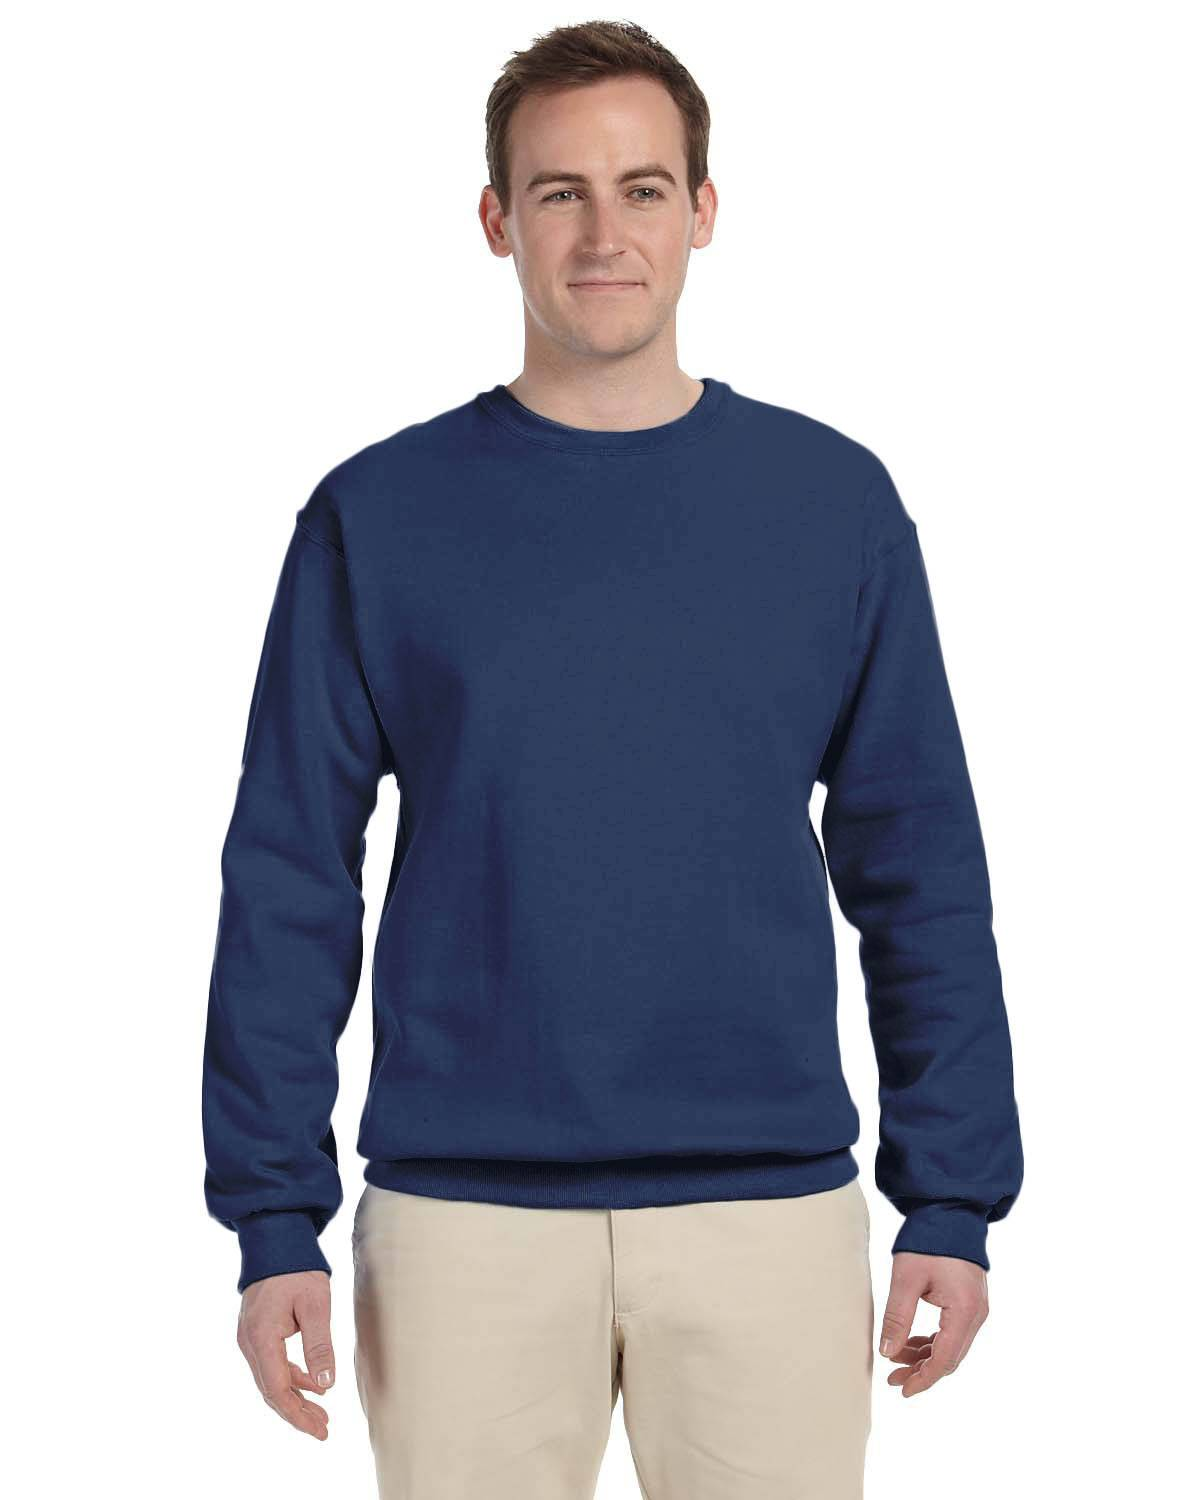 Fruit of the Loom Adult 20 oz./lin. yd. Supercotton Fleece Crew | 82300